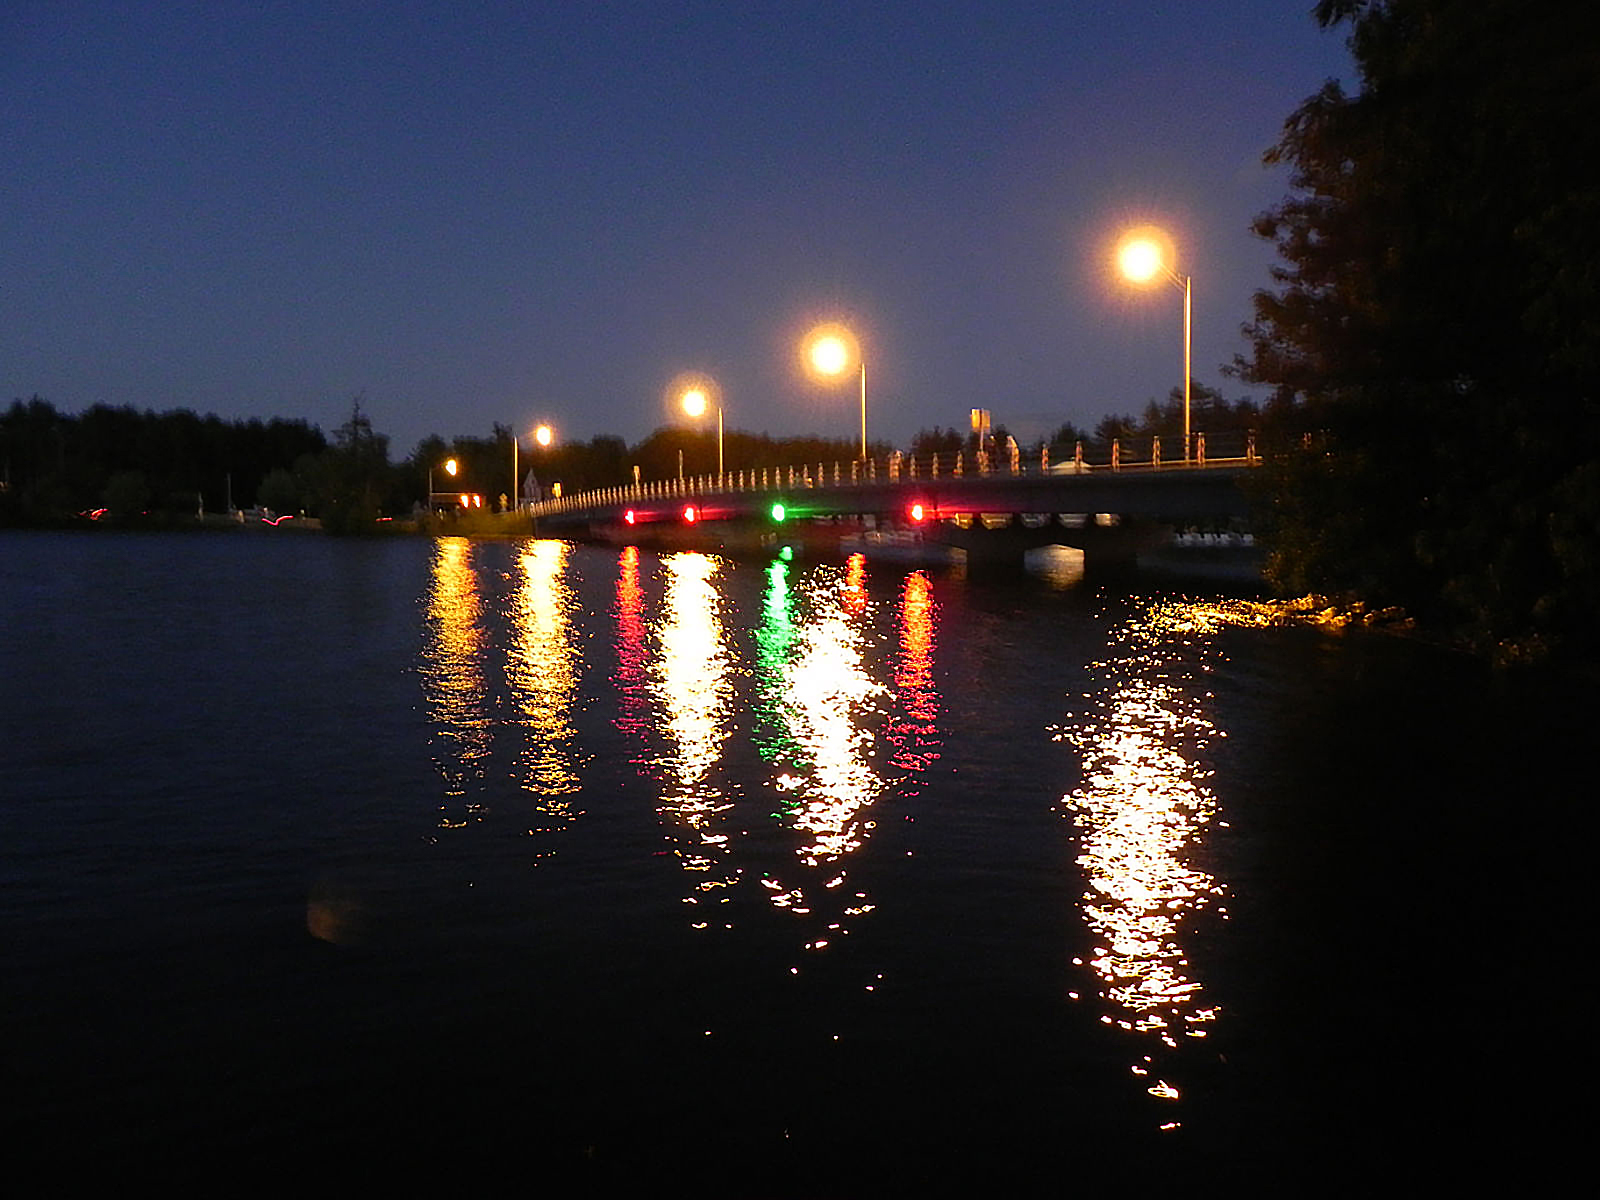 Sealite Bridge Lights